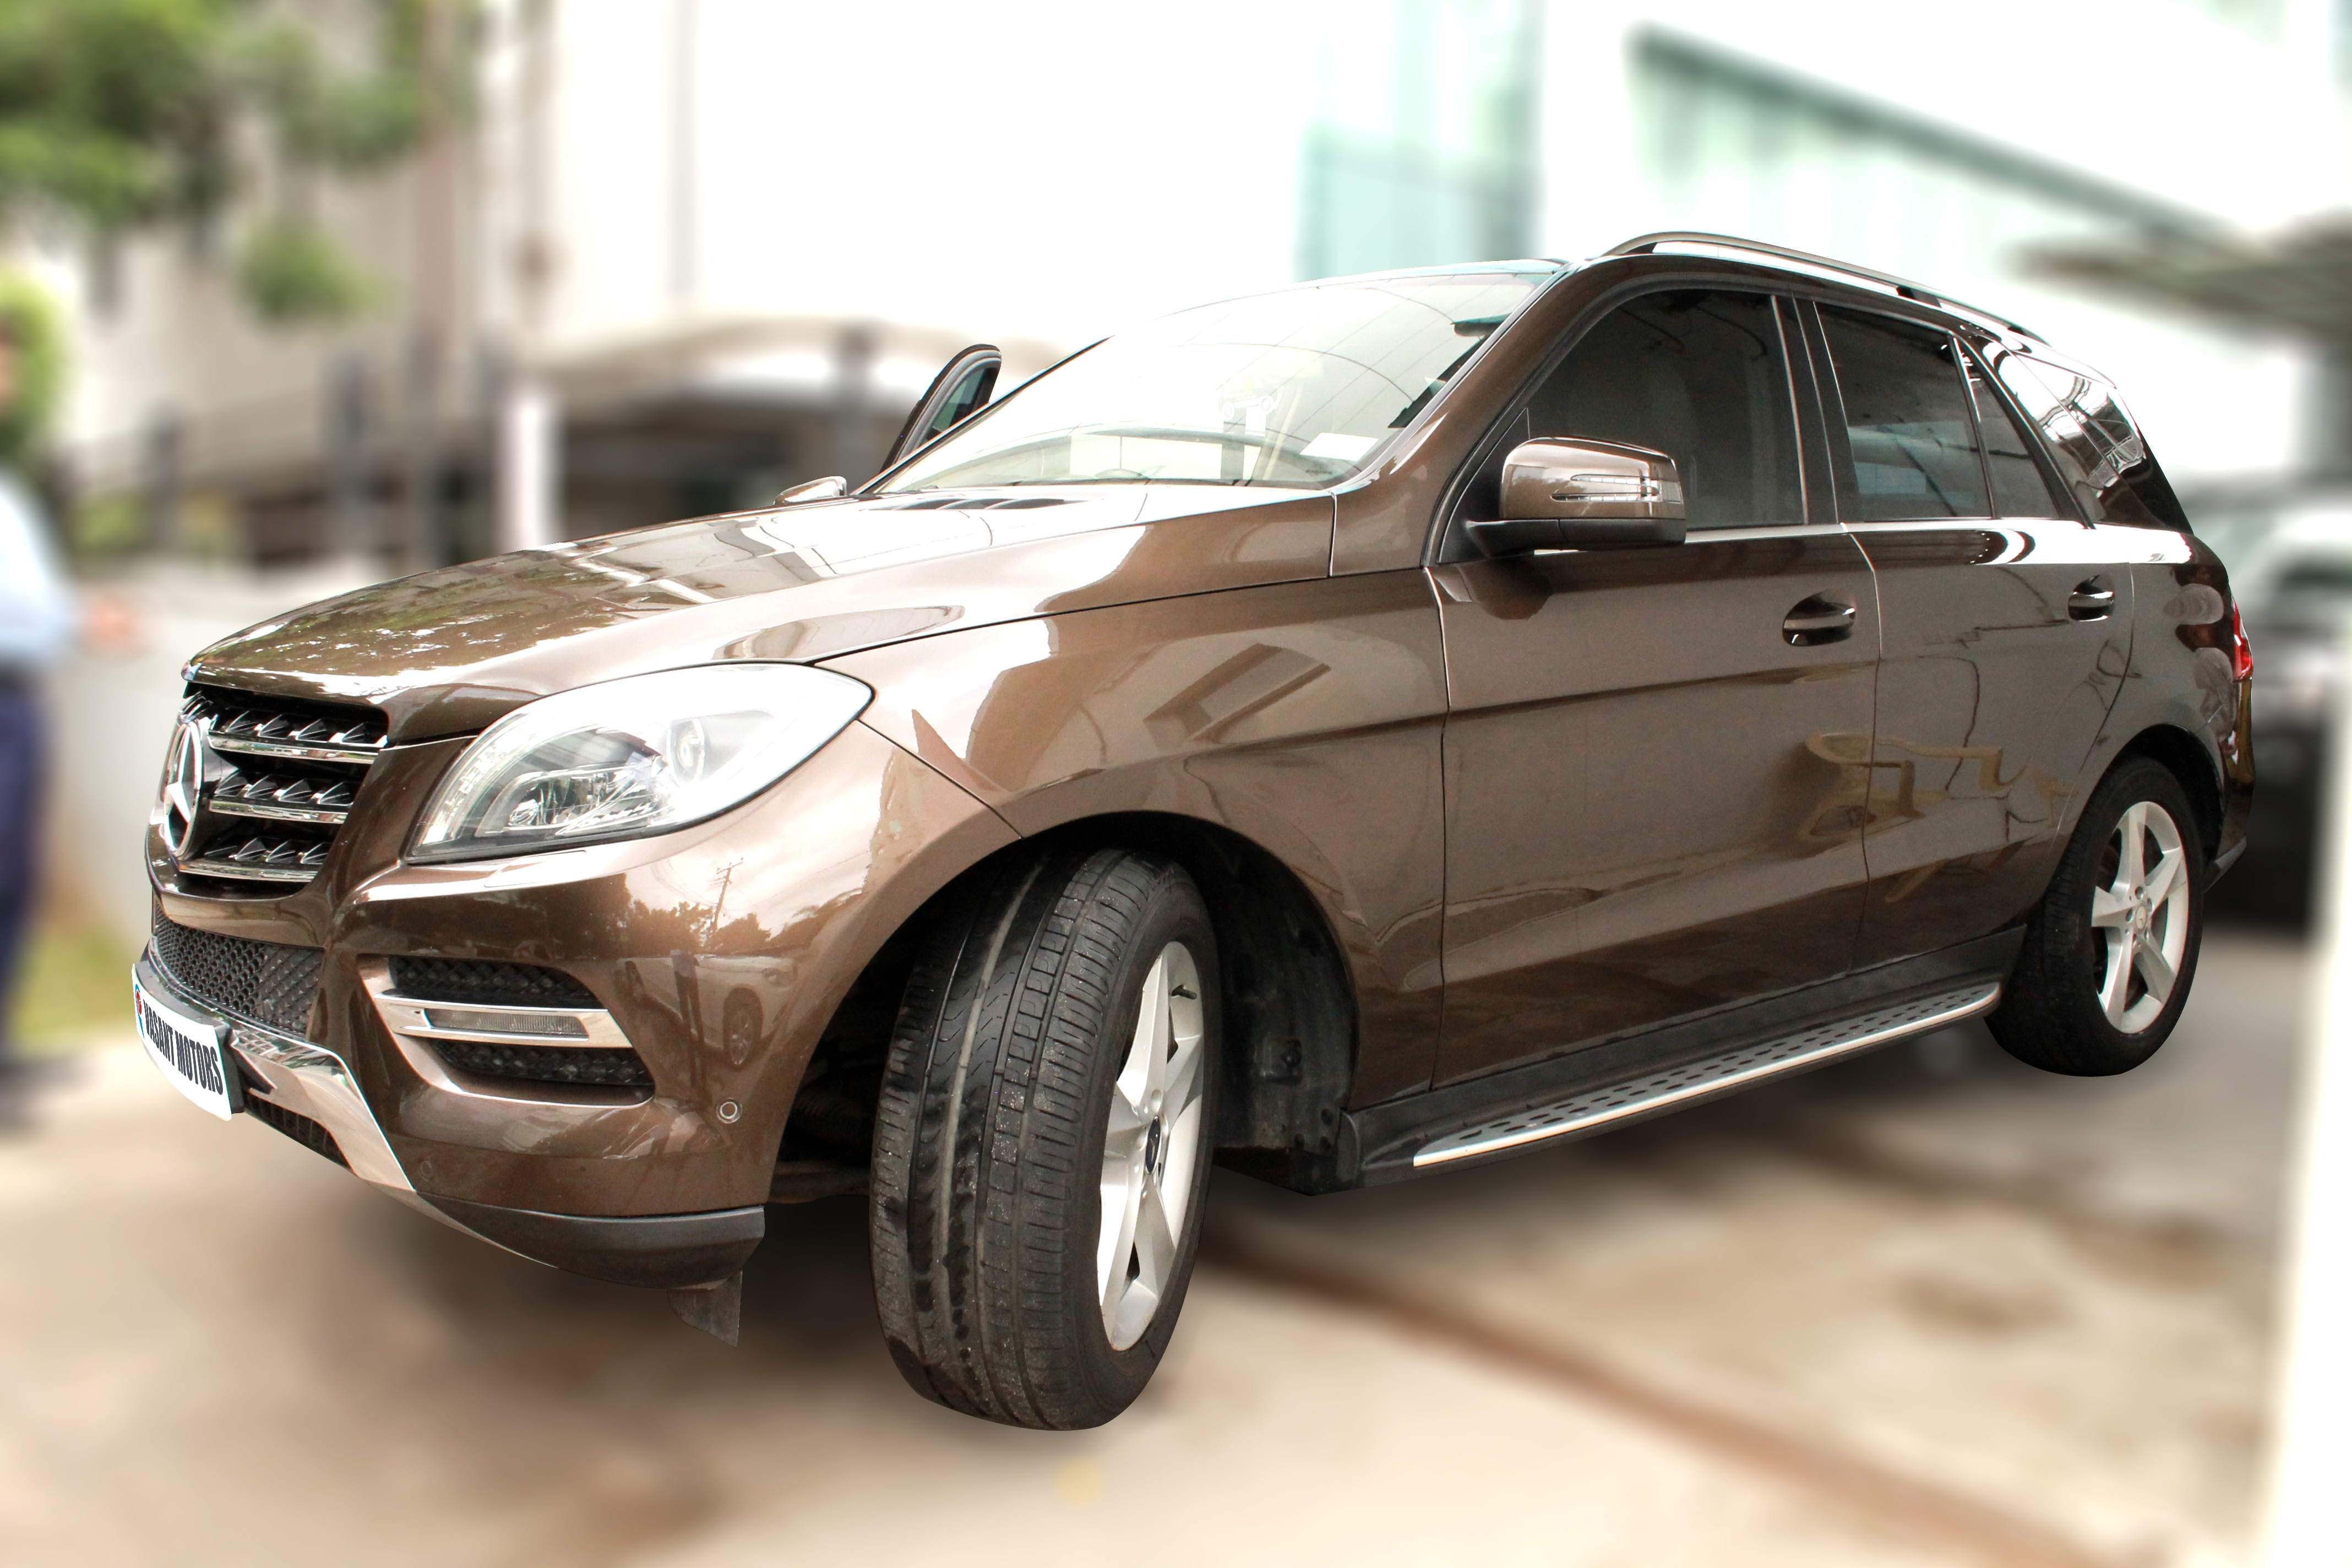 MERCEDES-BENZ ML350 CDI 4MATIC BLUE EFFICIENCY BSIV, (CITRINE BROWN COLOR, DIESEL) 2014 model done only 52, 000kms in absolute mint condition... buy now and get one year #service pack from us. For further info call 7569696666